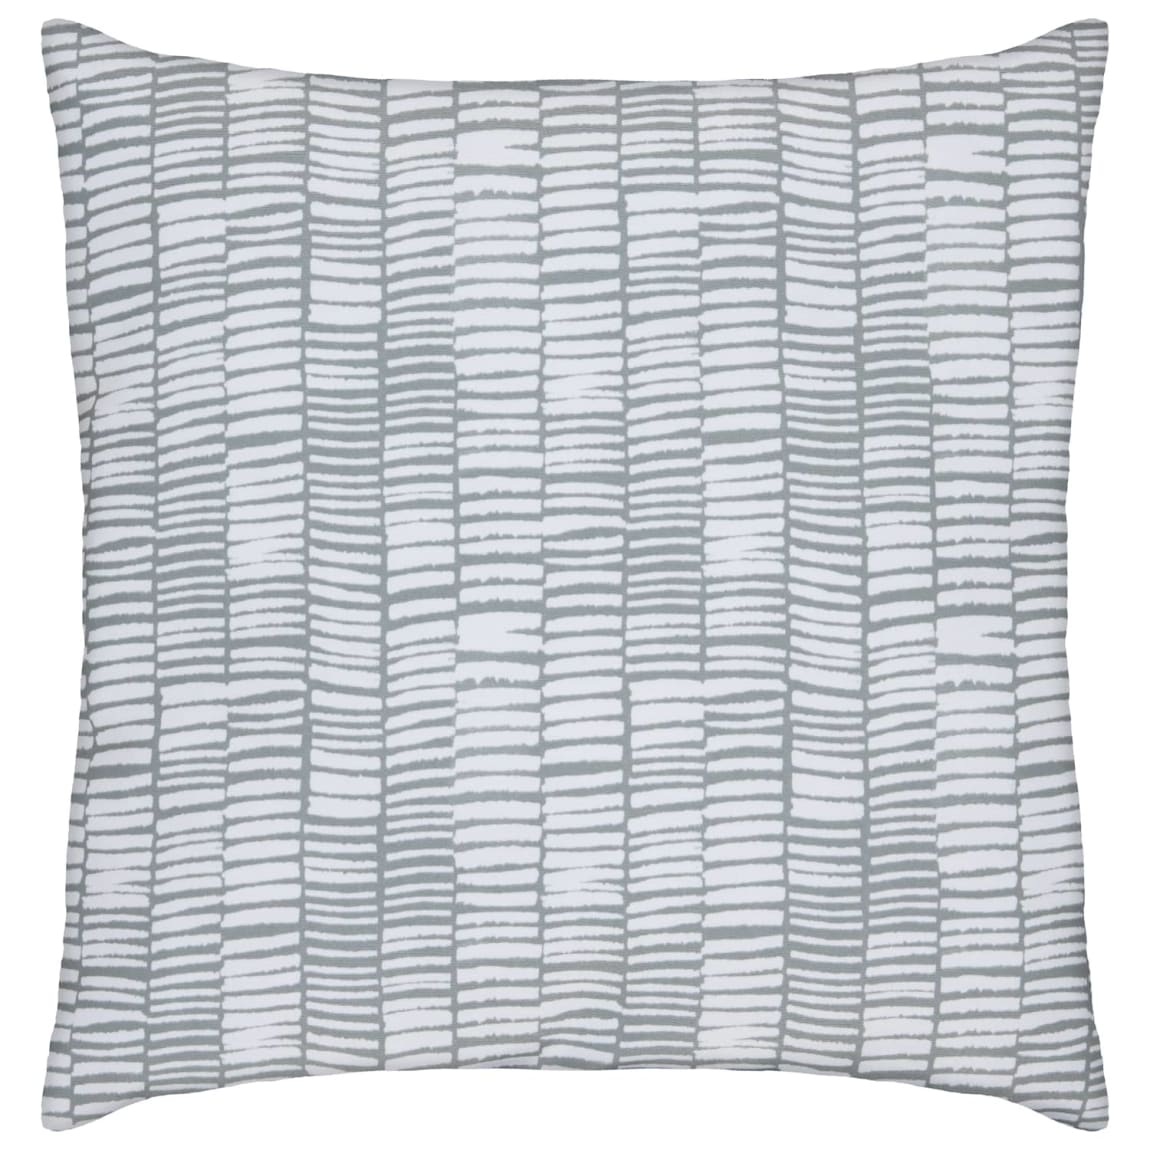 Outdoor Nordic Scatter Cushion - Grey